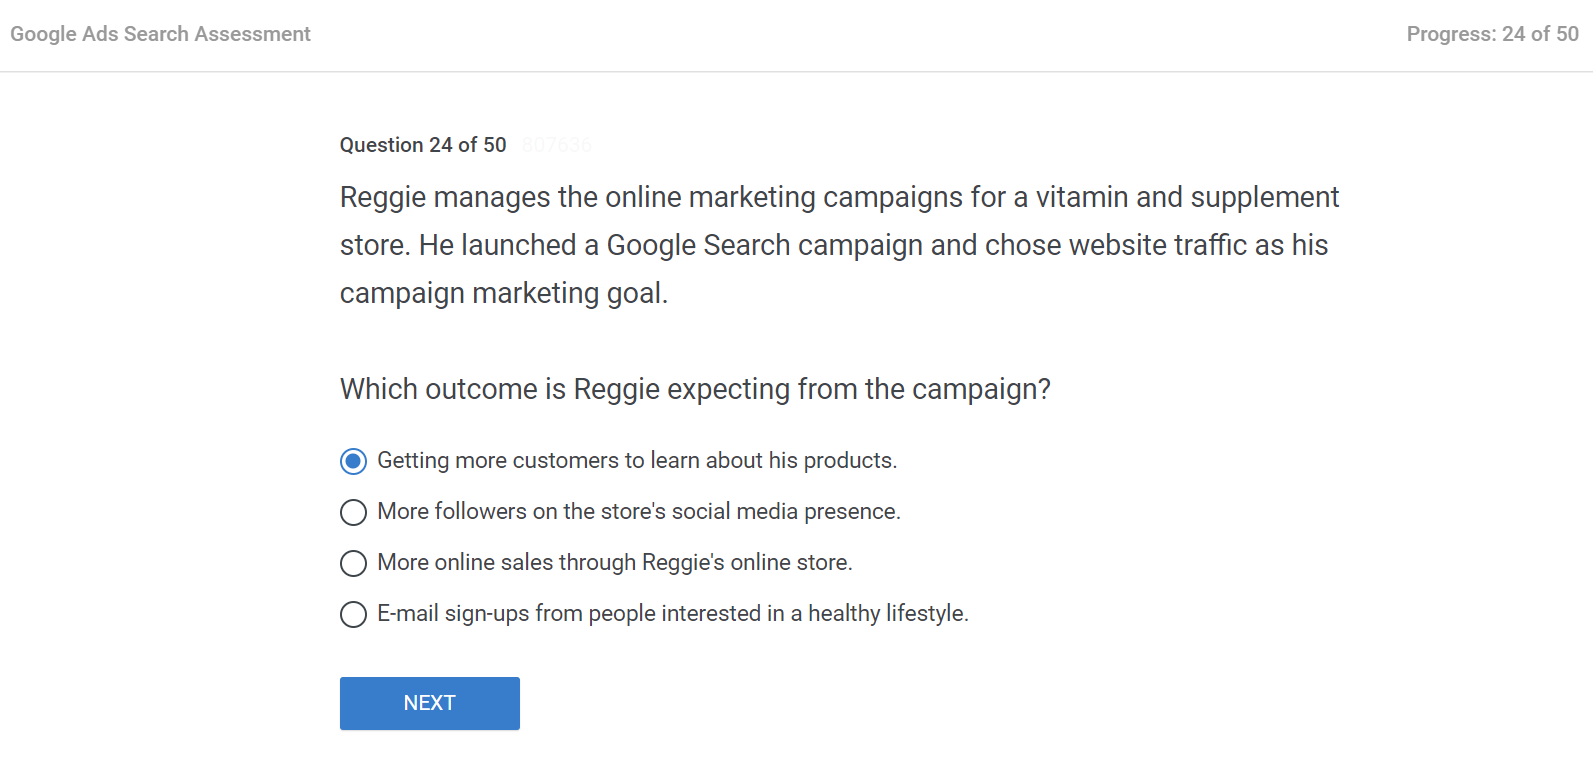 Reggie manages the online marketing campaigns for a vitamin and supplement store